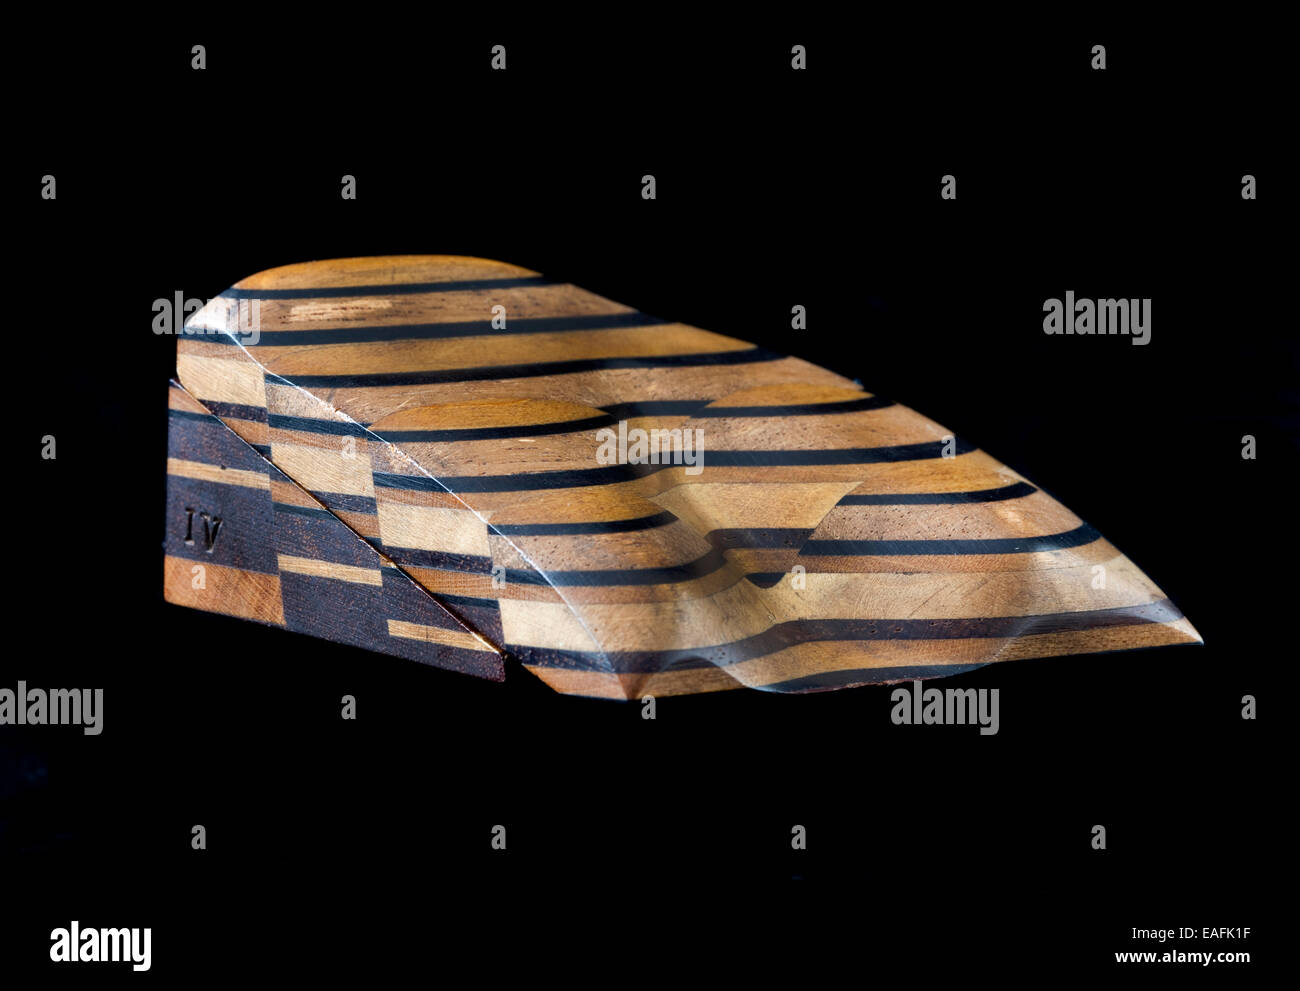 Sopwith Model IV: Surface indications of coal showing fallacious appearances - Stock Image